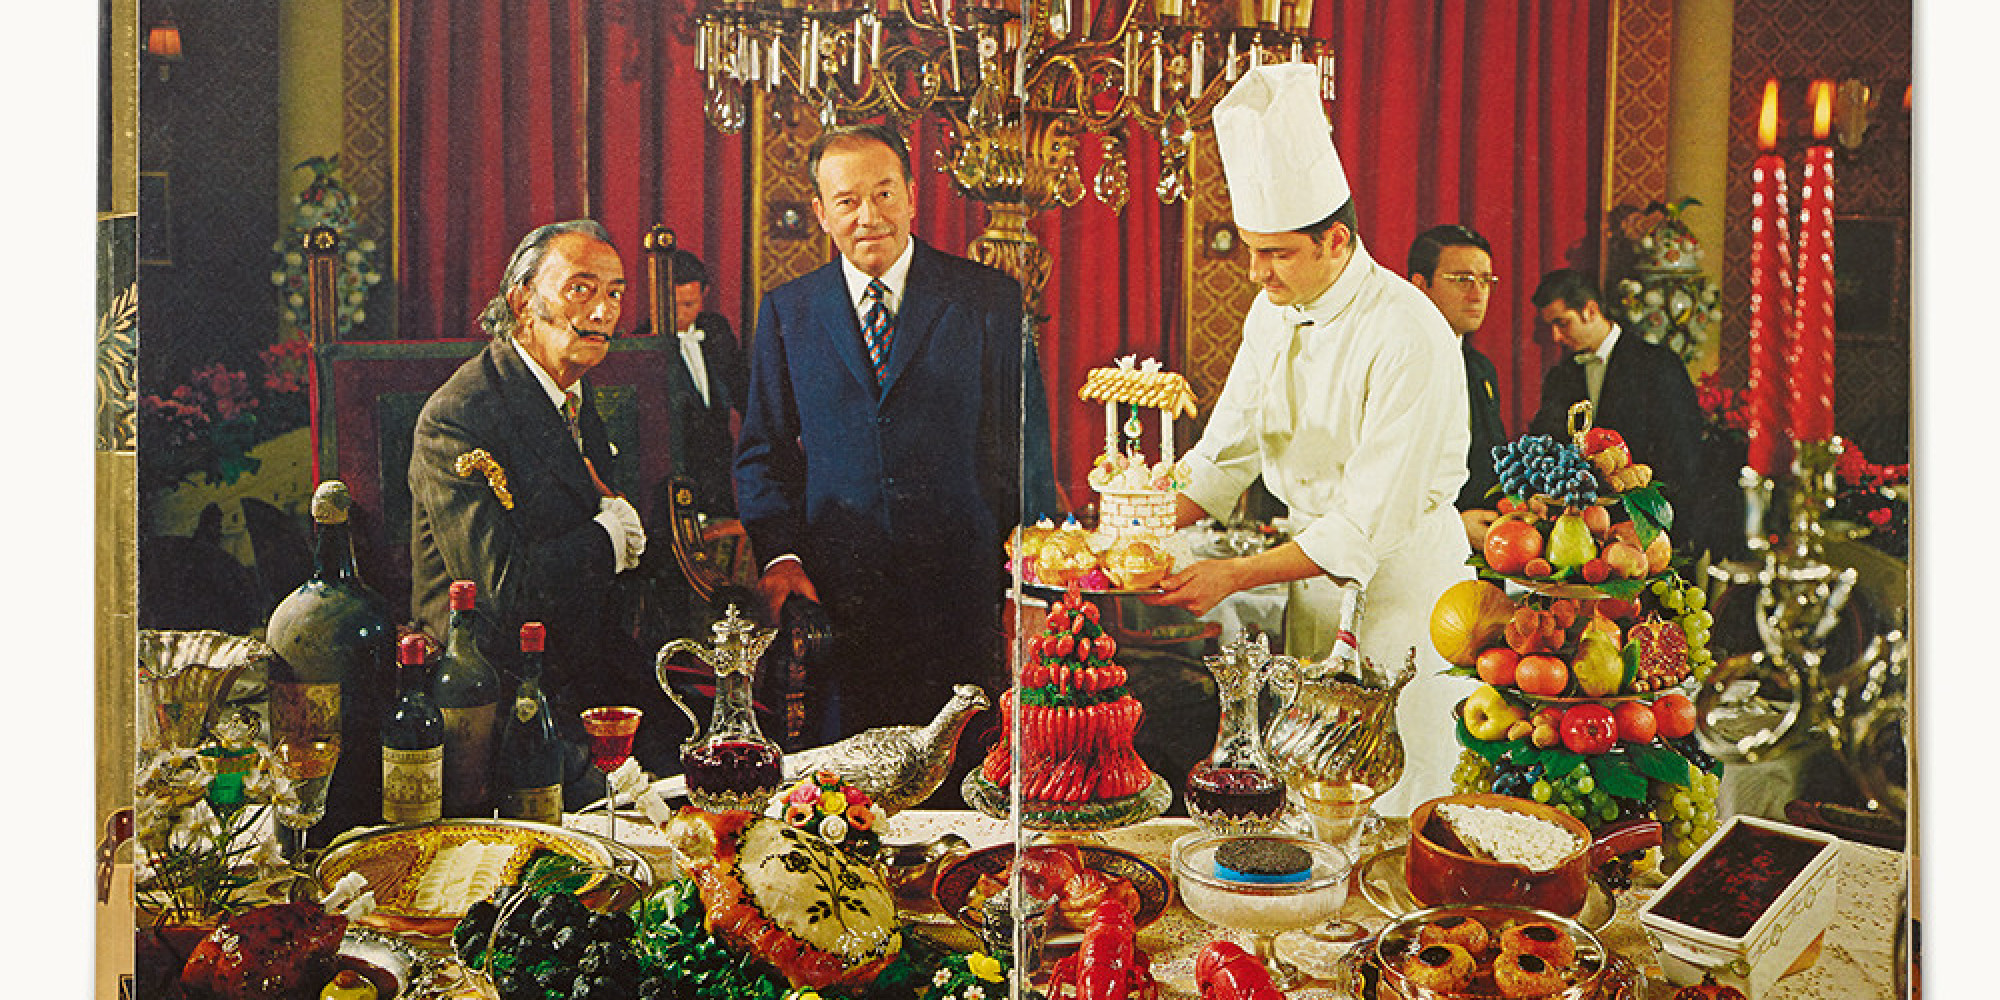 Book Review: 'Les Diners de Gala' Salvadore Dali's delectable and twisted psychedelic cook-book